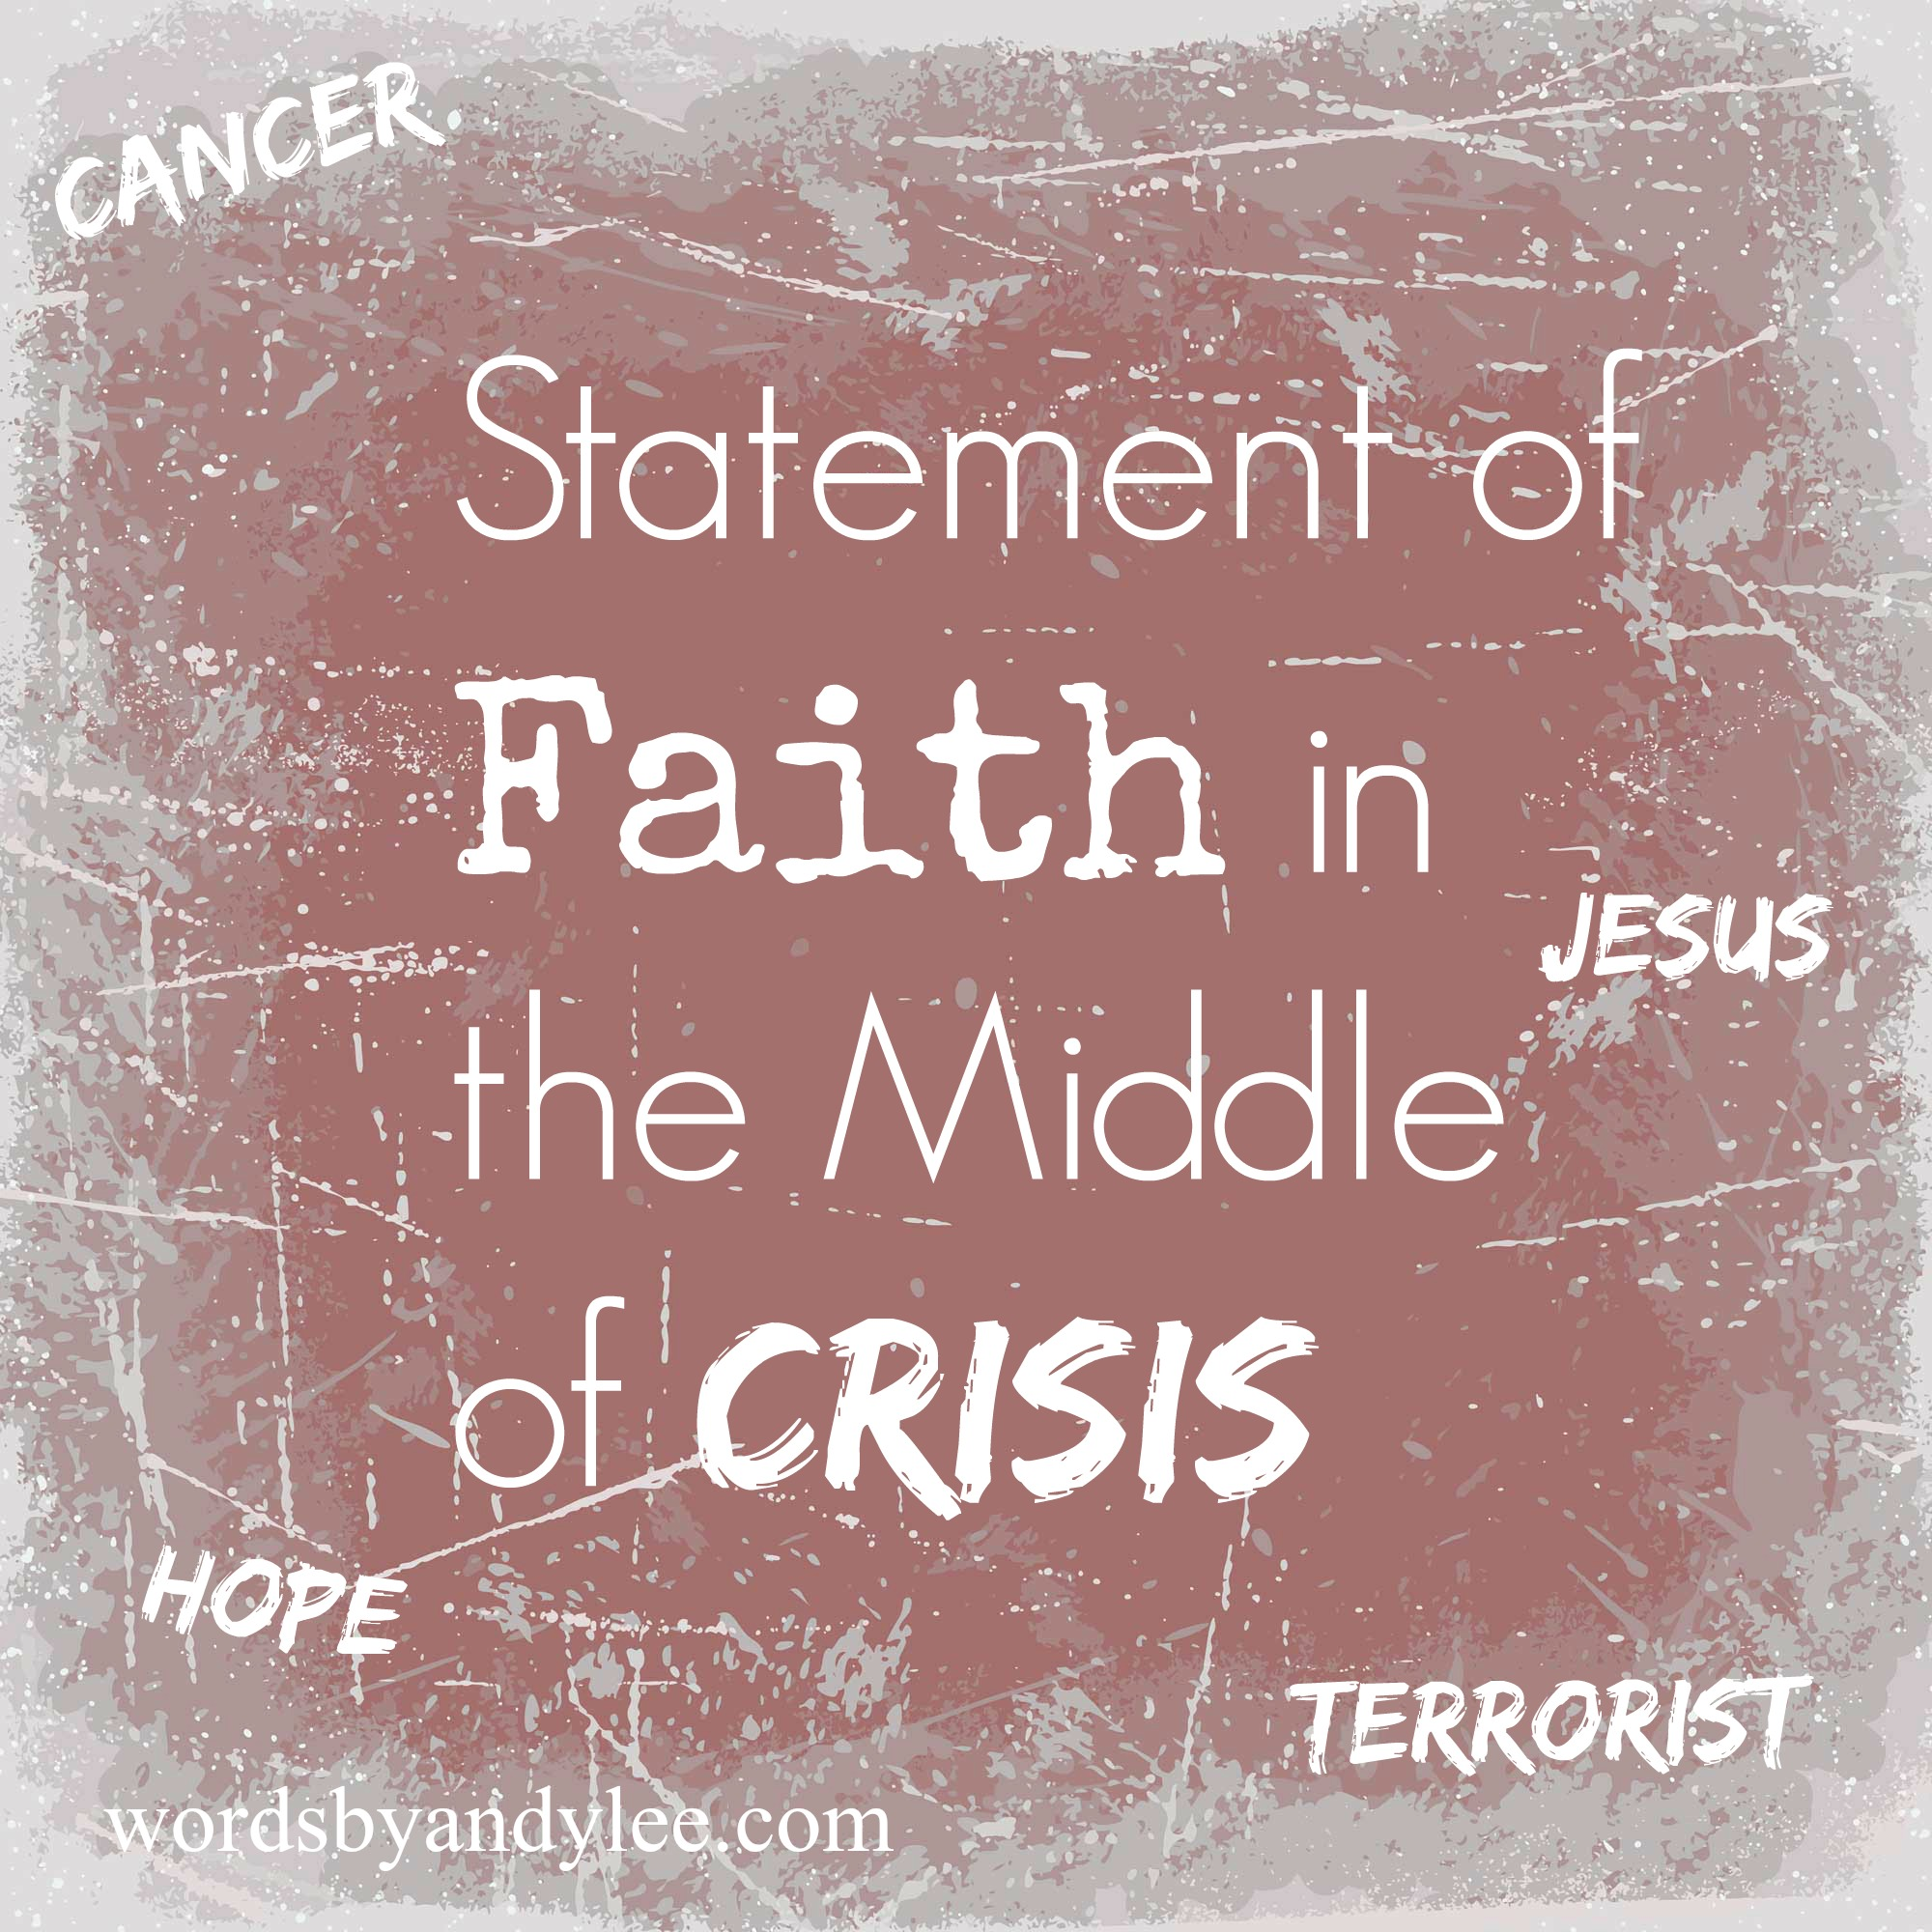 my personal statement of faith Statement of faith we believe the bible to be the only inspired, trustworthy and true, without error, word of god (2 timothy 3:16-17) we believe there is only one god who eternally exists in three persons: father, son and holy spirit.